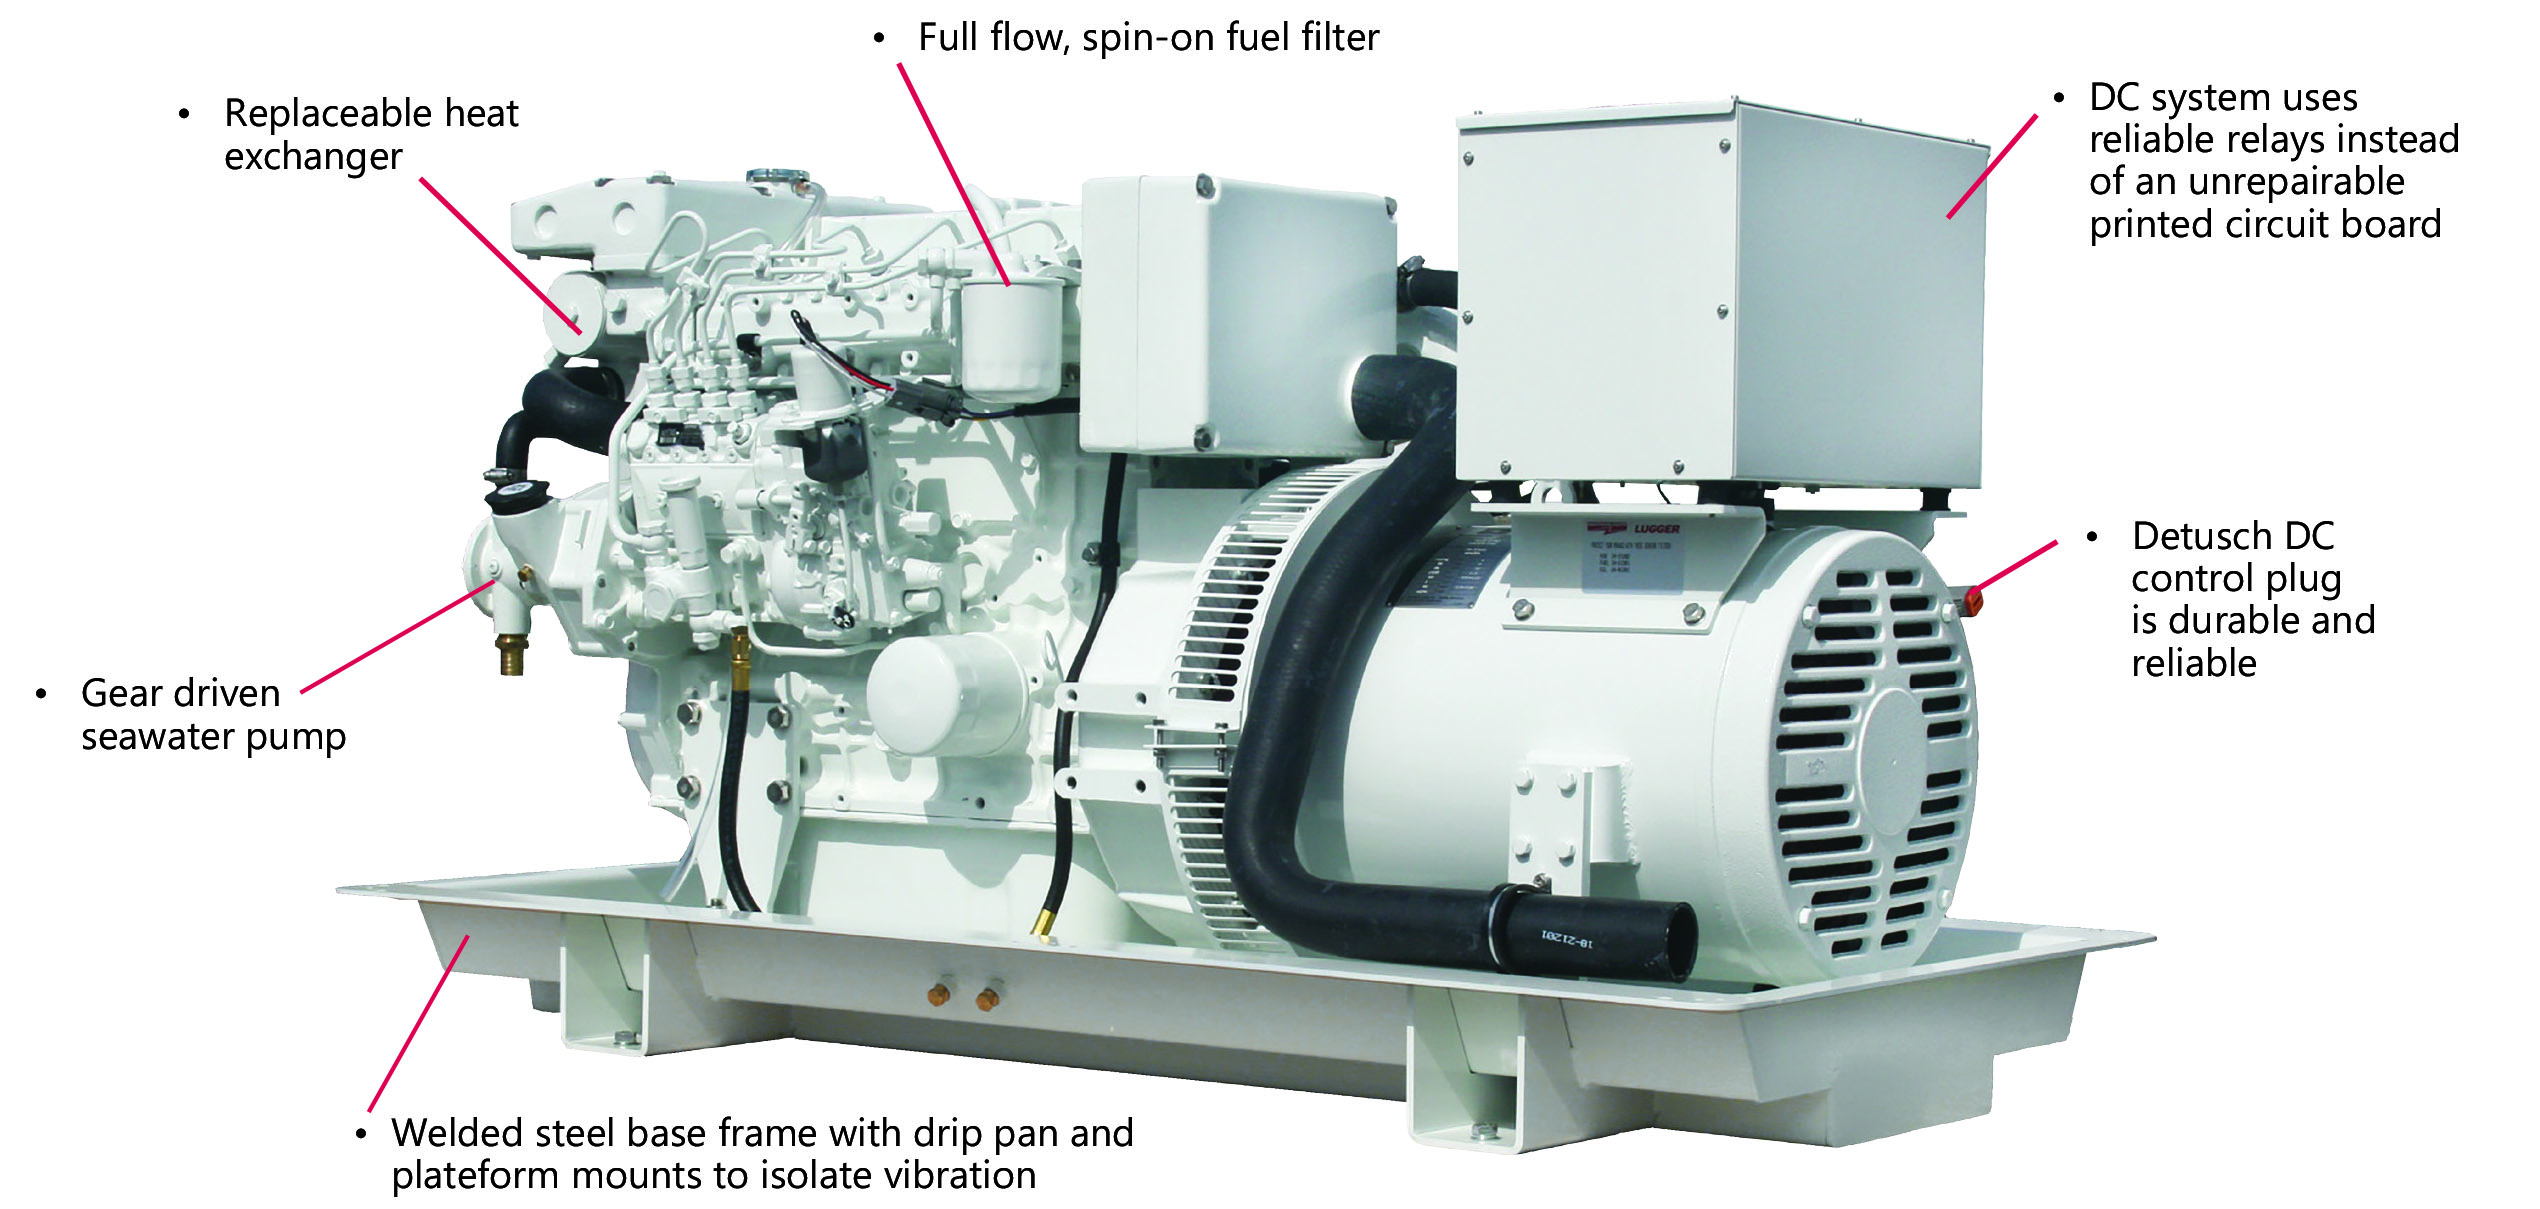 M944W3 – 30 kW/26 kW – Northern Lights Marine Generators And